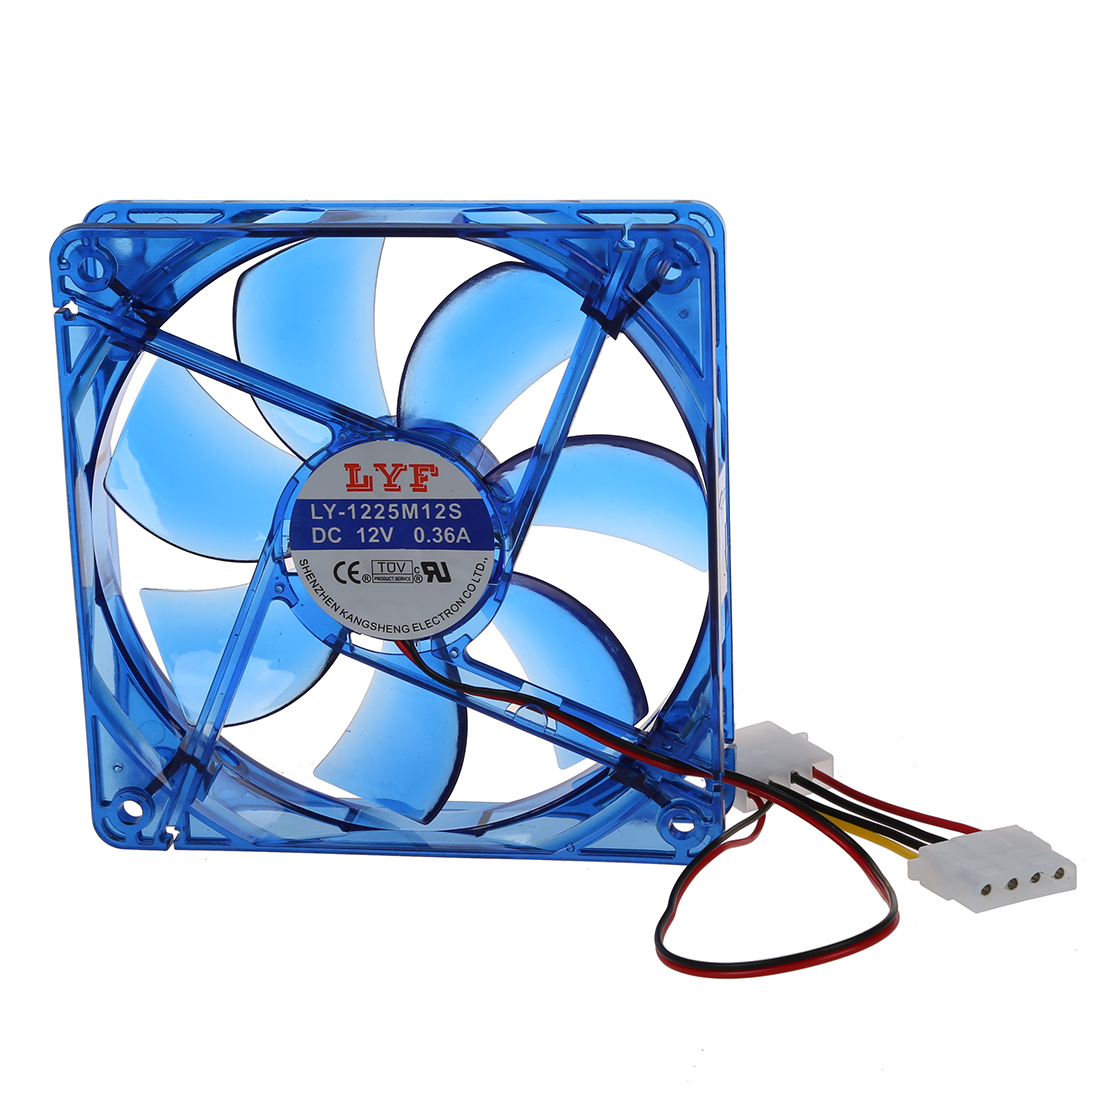 DC 12V 4-Pin 4 Blue LED <font><b>PC</b></font> Computer Enclosure <font><b>Fan</b></font> <font><b>120</b></font> x 25 <font><b>mm</b></font> image